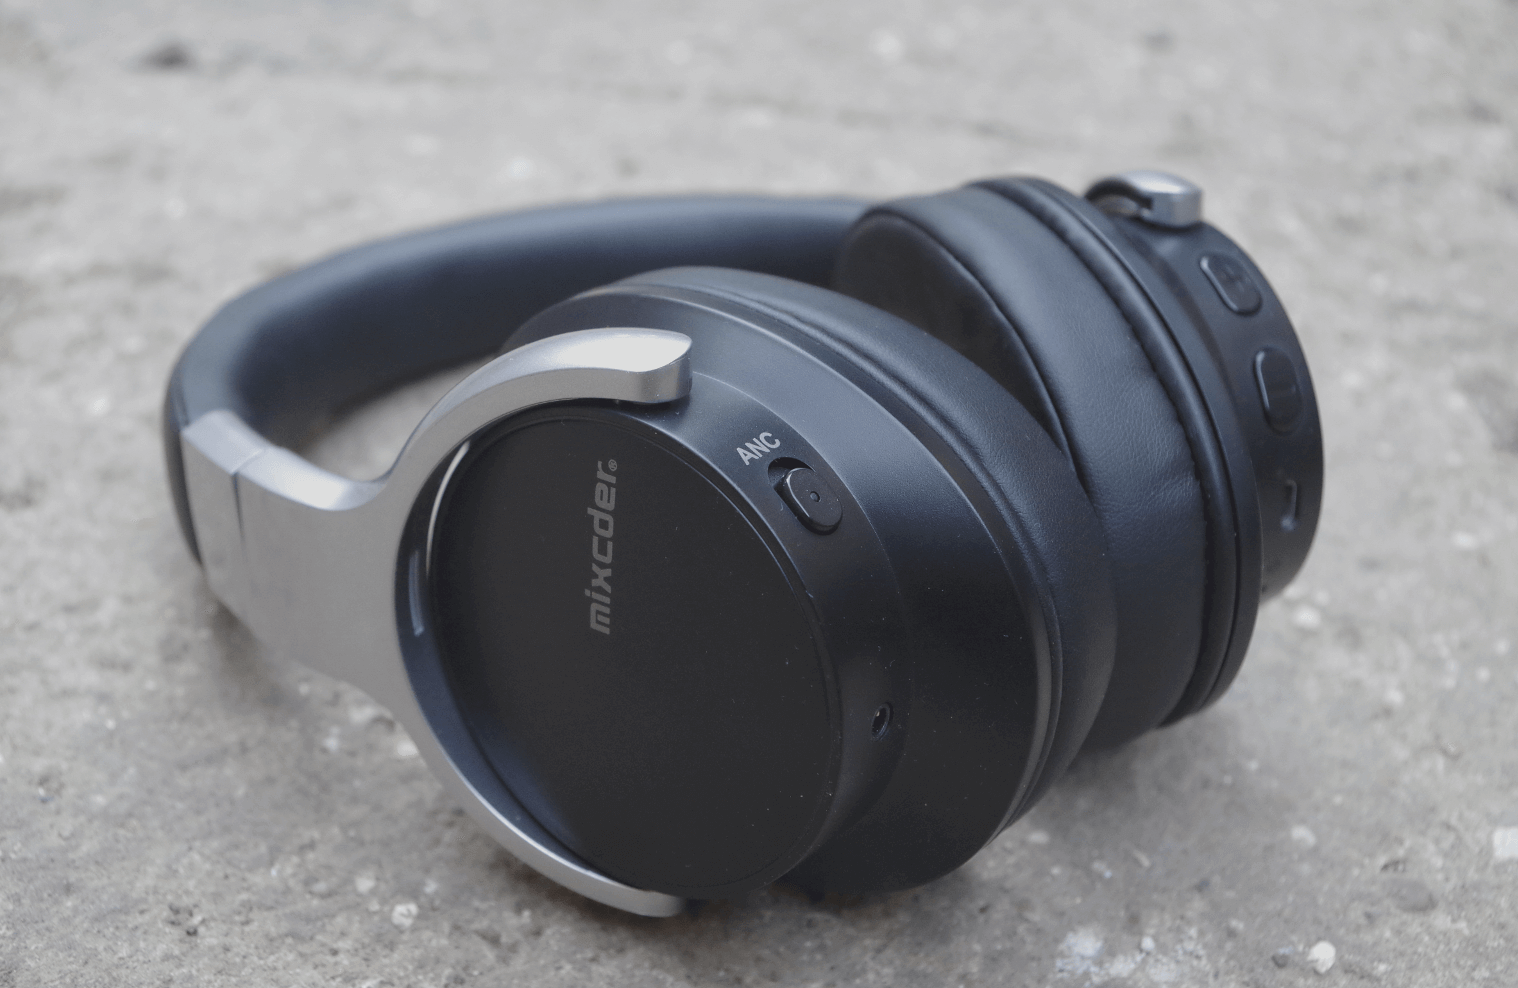 Headphones with active noise canceling over 4 000 rubles — this is the reality